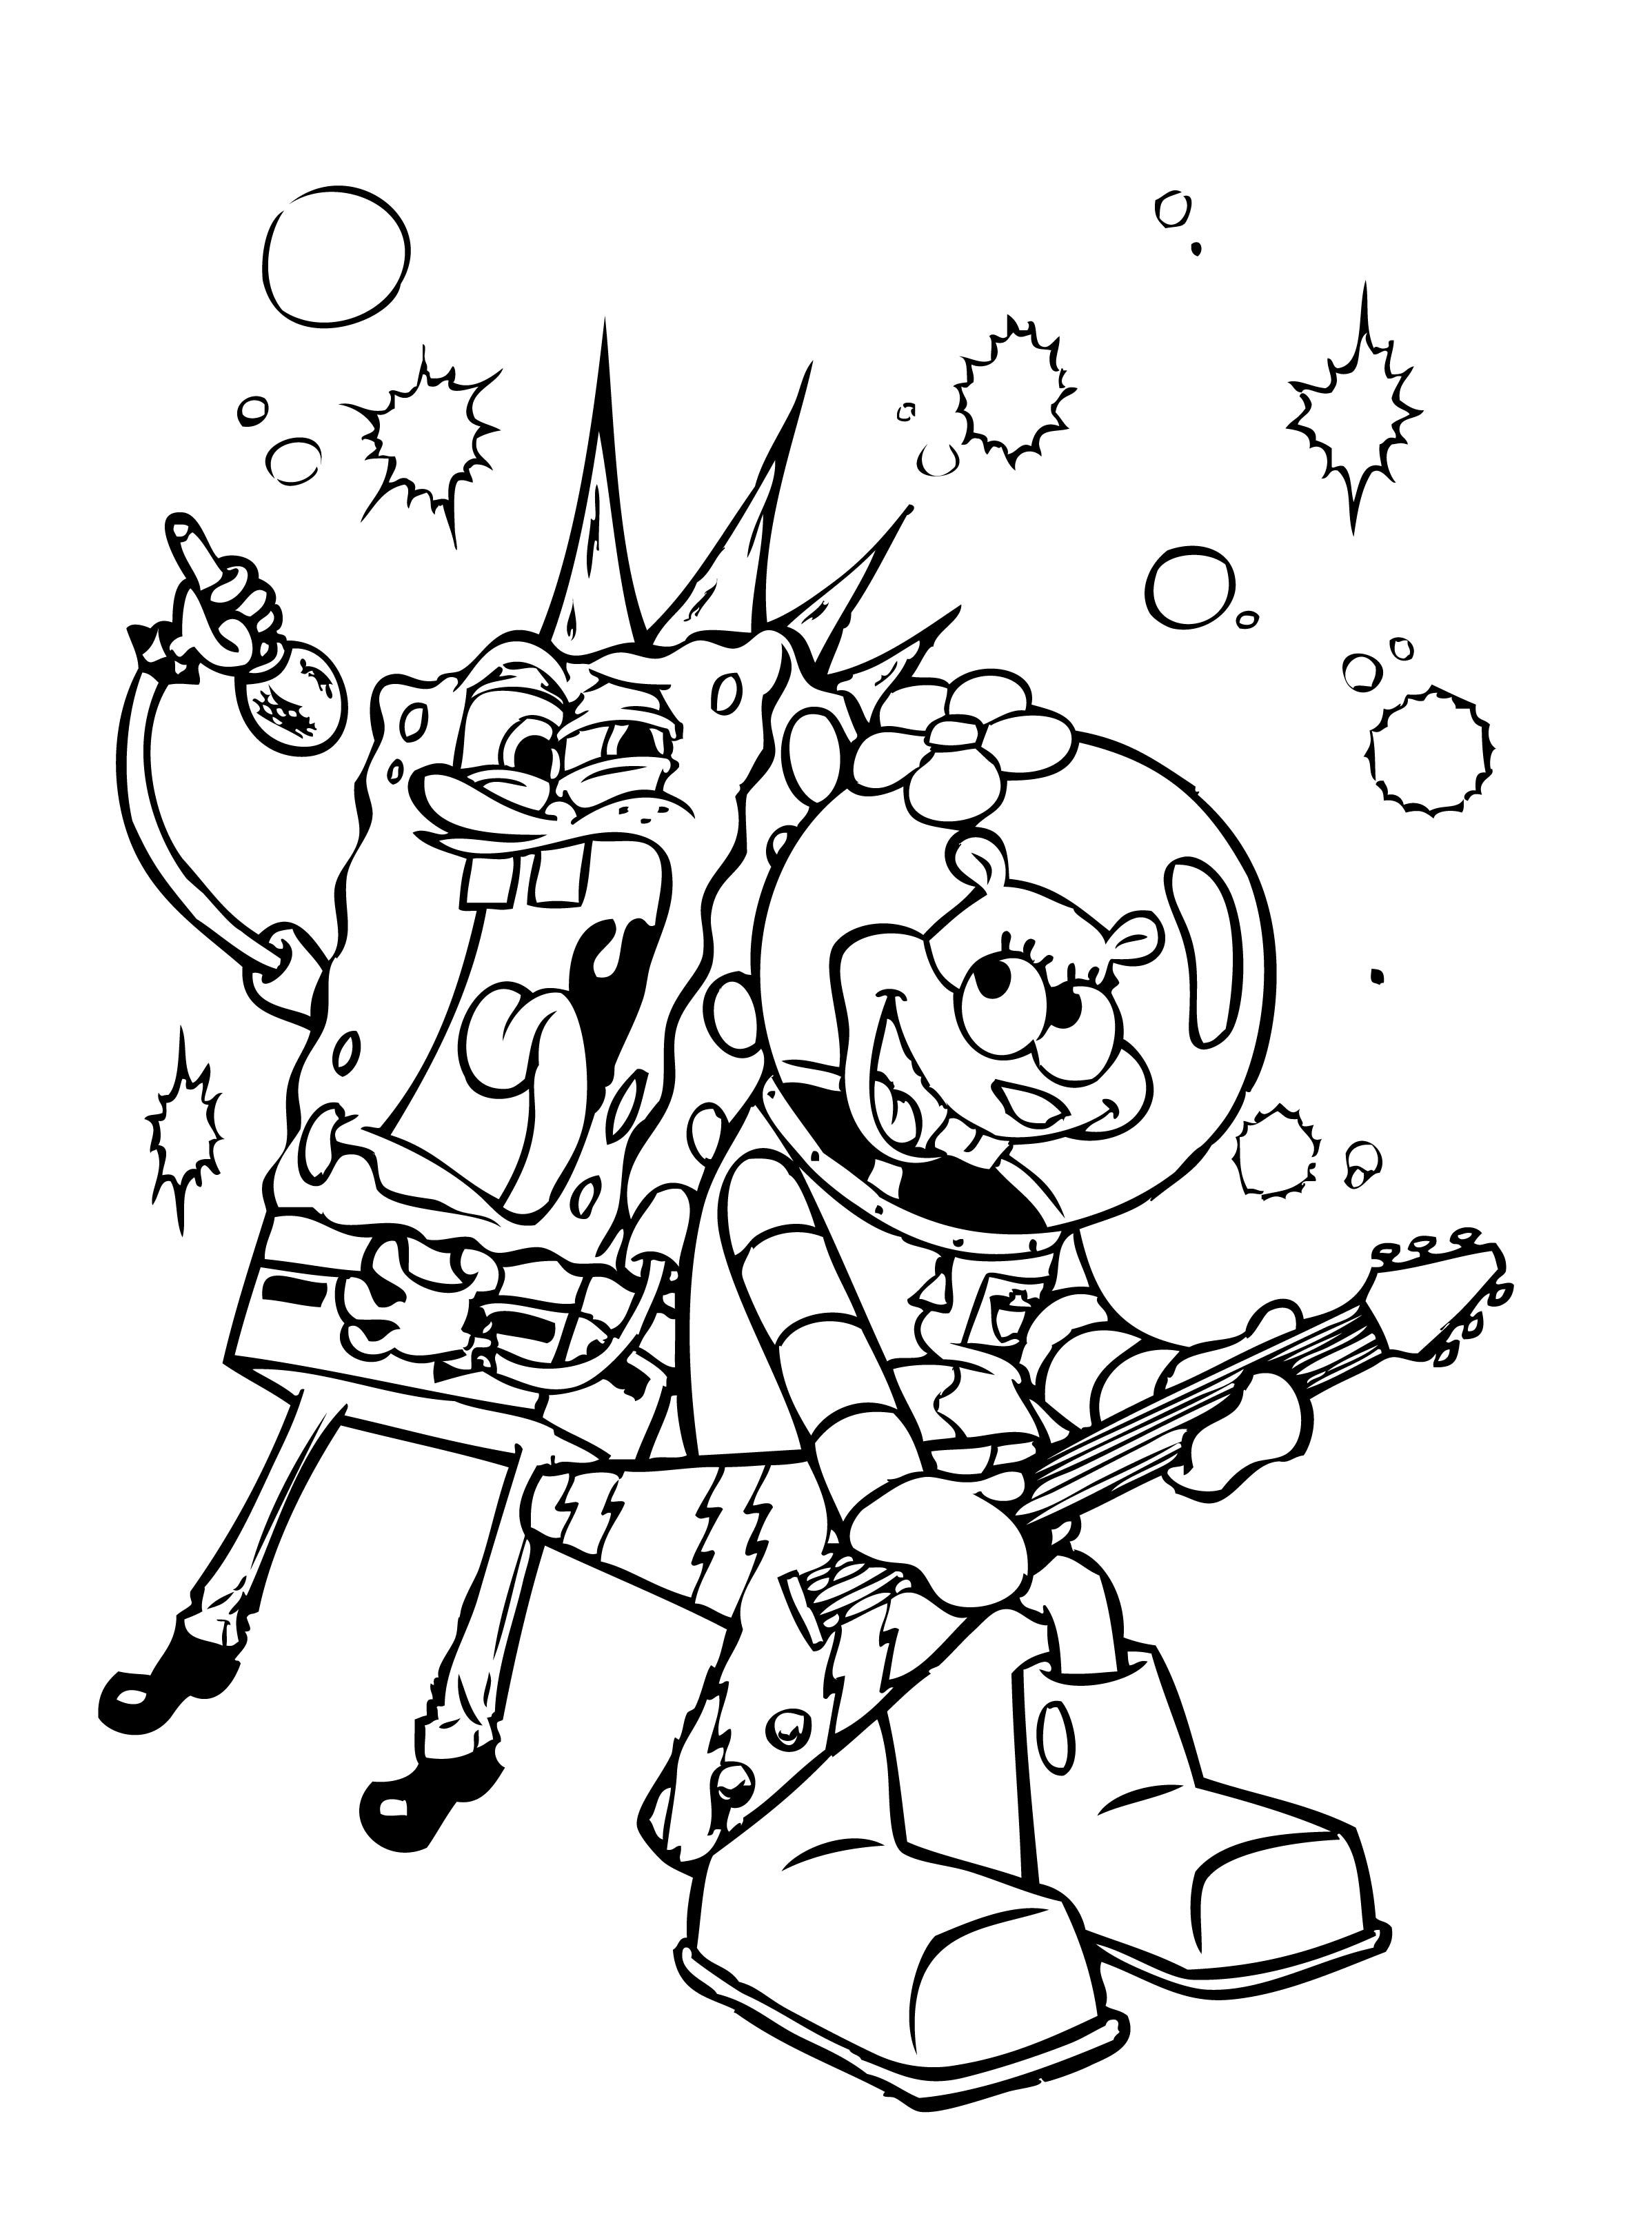 coloring pages online spongebob : Spongebob Sing Coloring Pages Hd Wallpaper Spongebob Pictures To